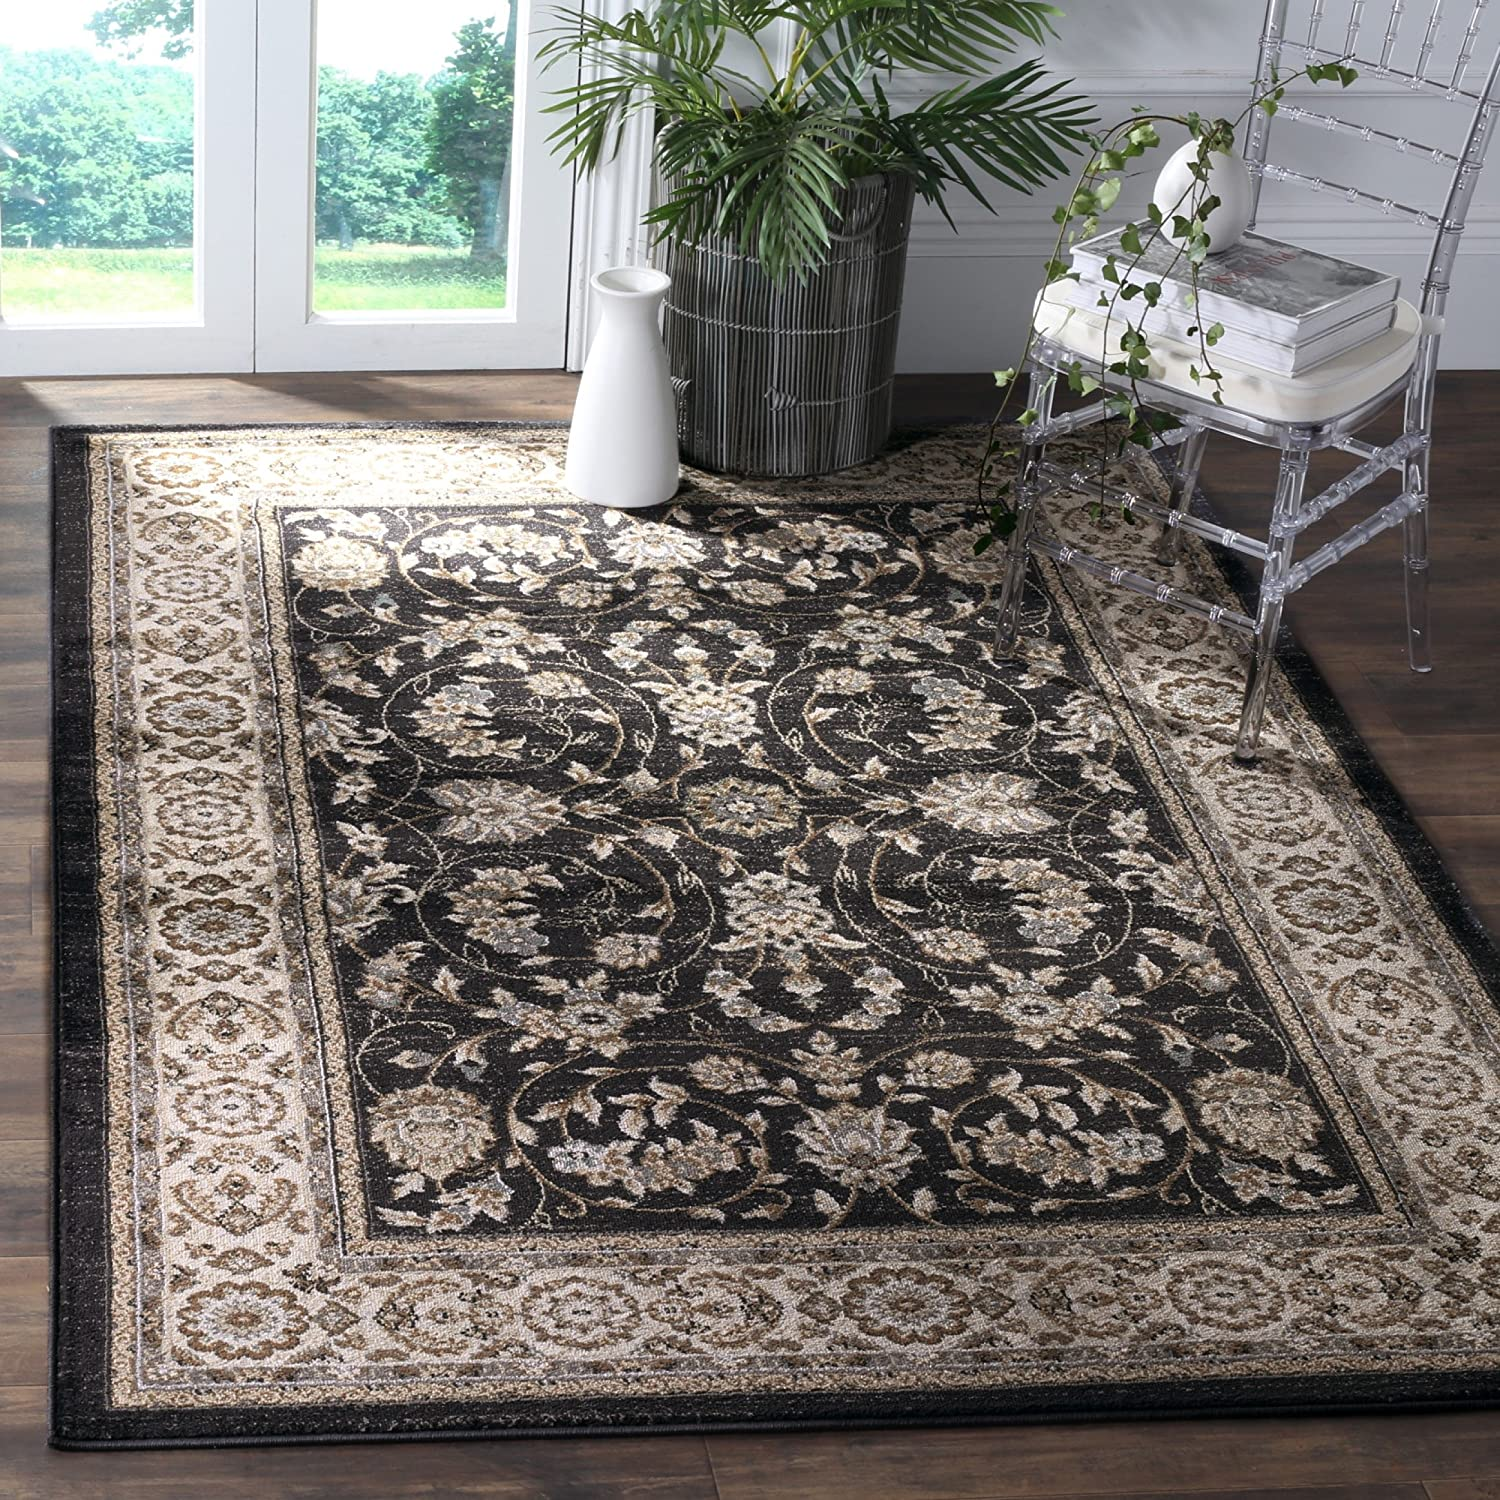 Amazon Com Safavieh Lyndhurst Collection Lnh340d Traditional Oriental Non Shedding Stain Resistant Living Room Bedroom Area Rug 7 X 7 Square Anthracite Cream Furniture Decor